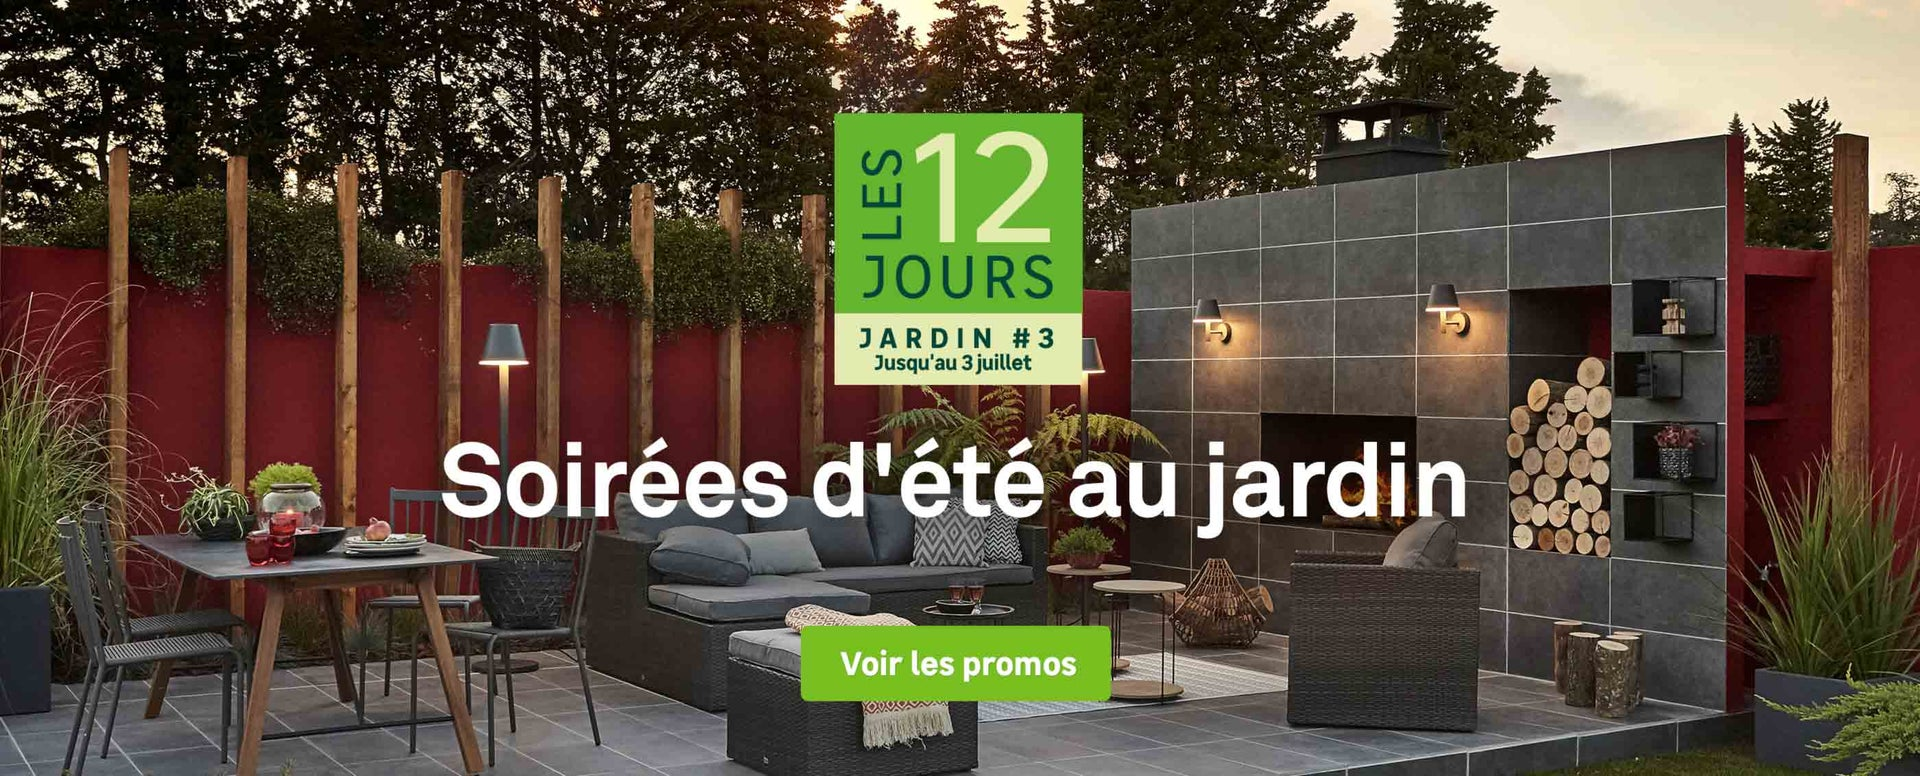 ZM_operation_jardin_3